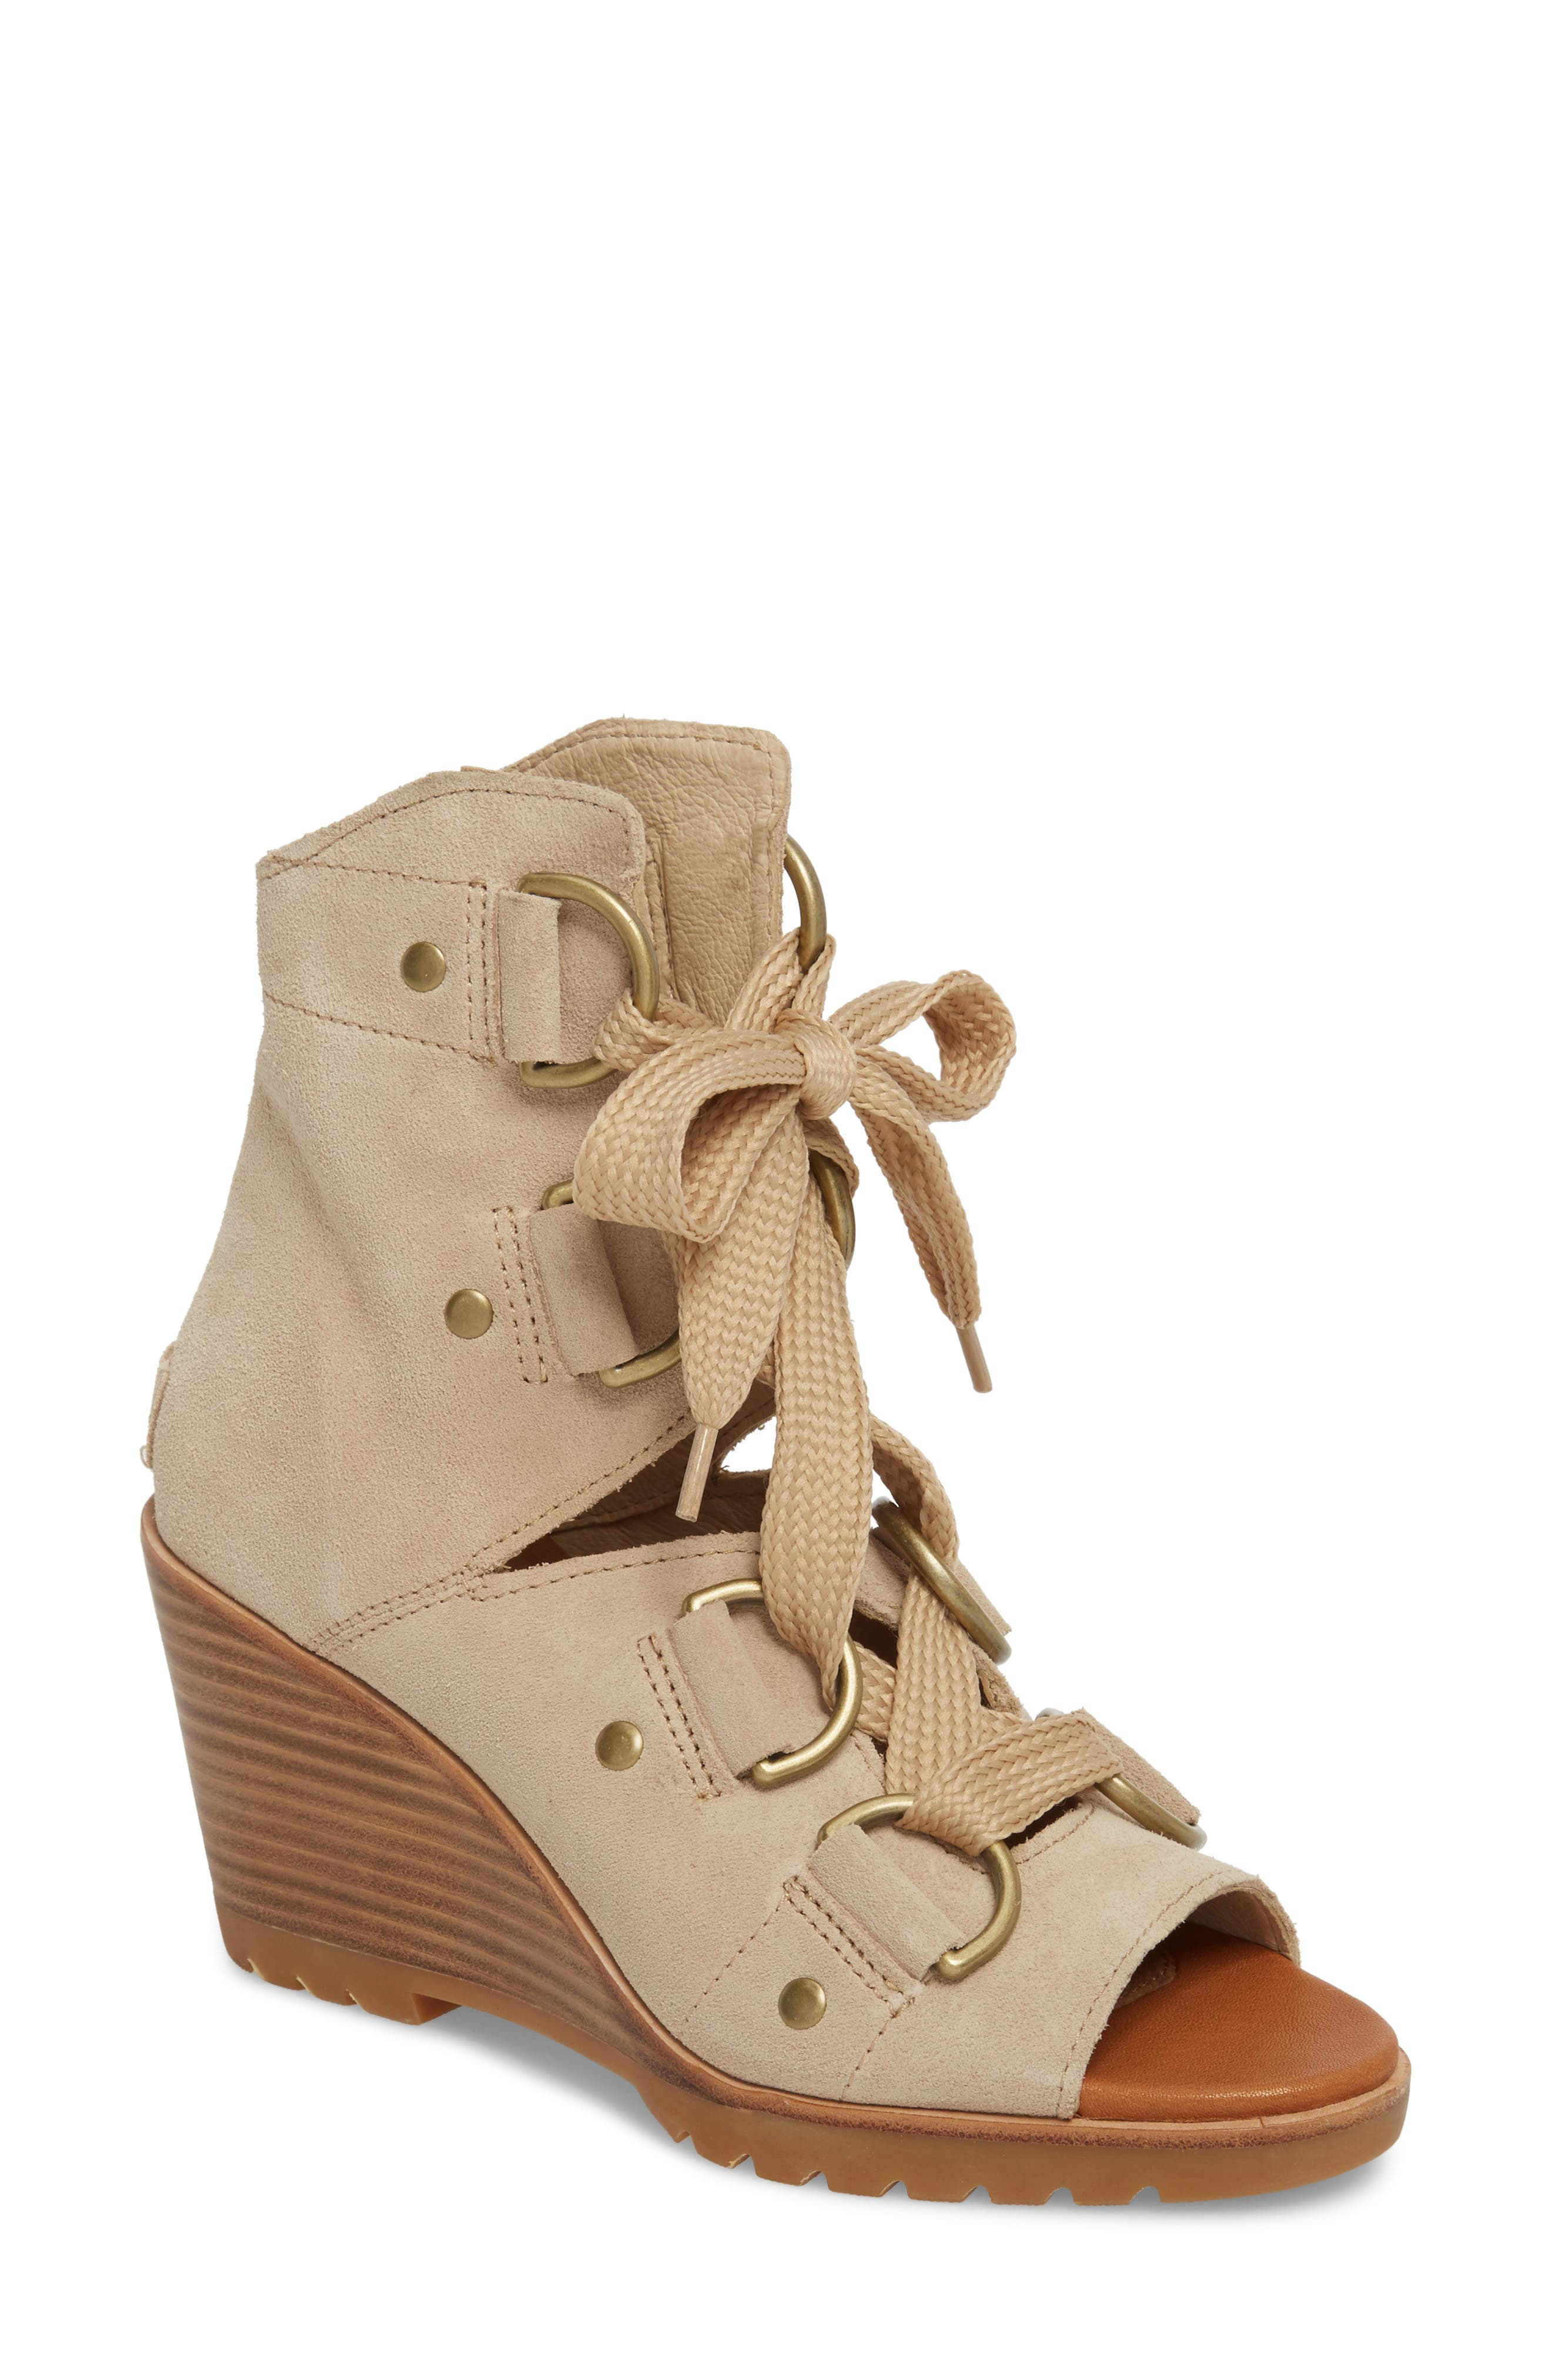 After Hours Wedge Bootie,                         Main,                         color, 250